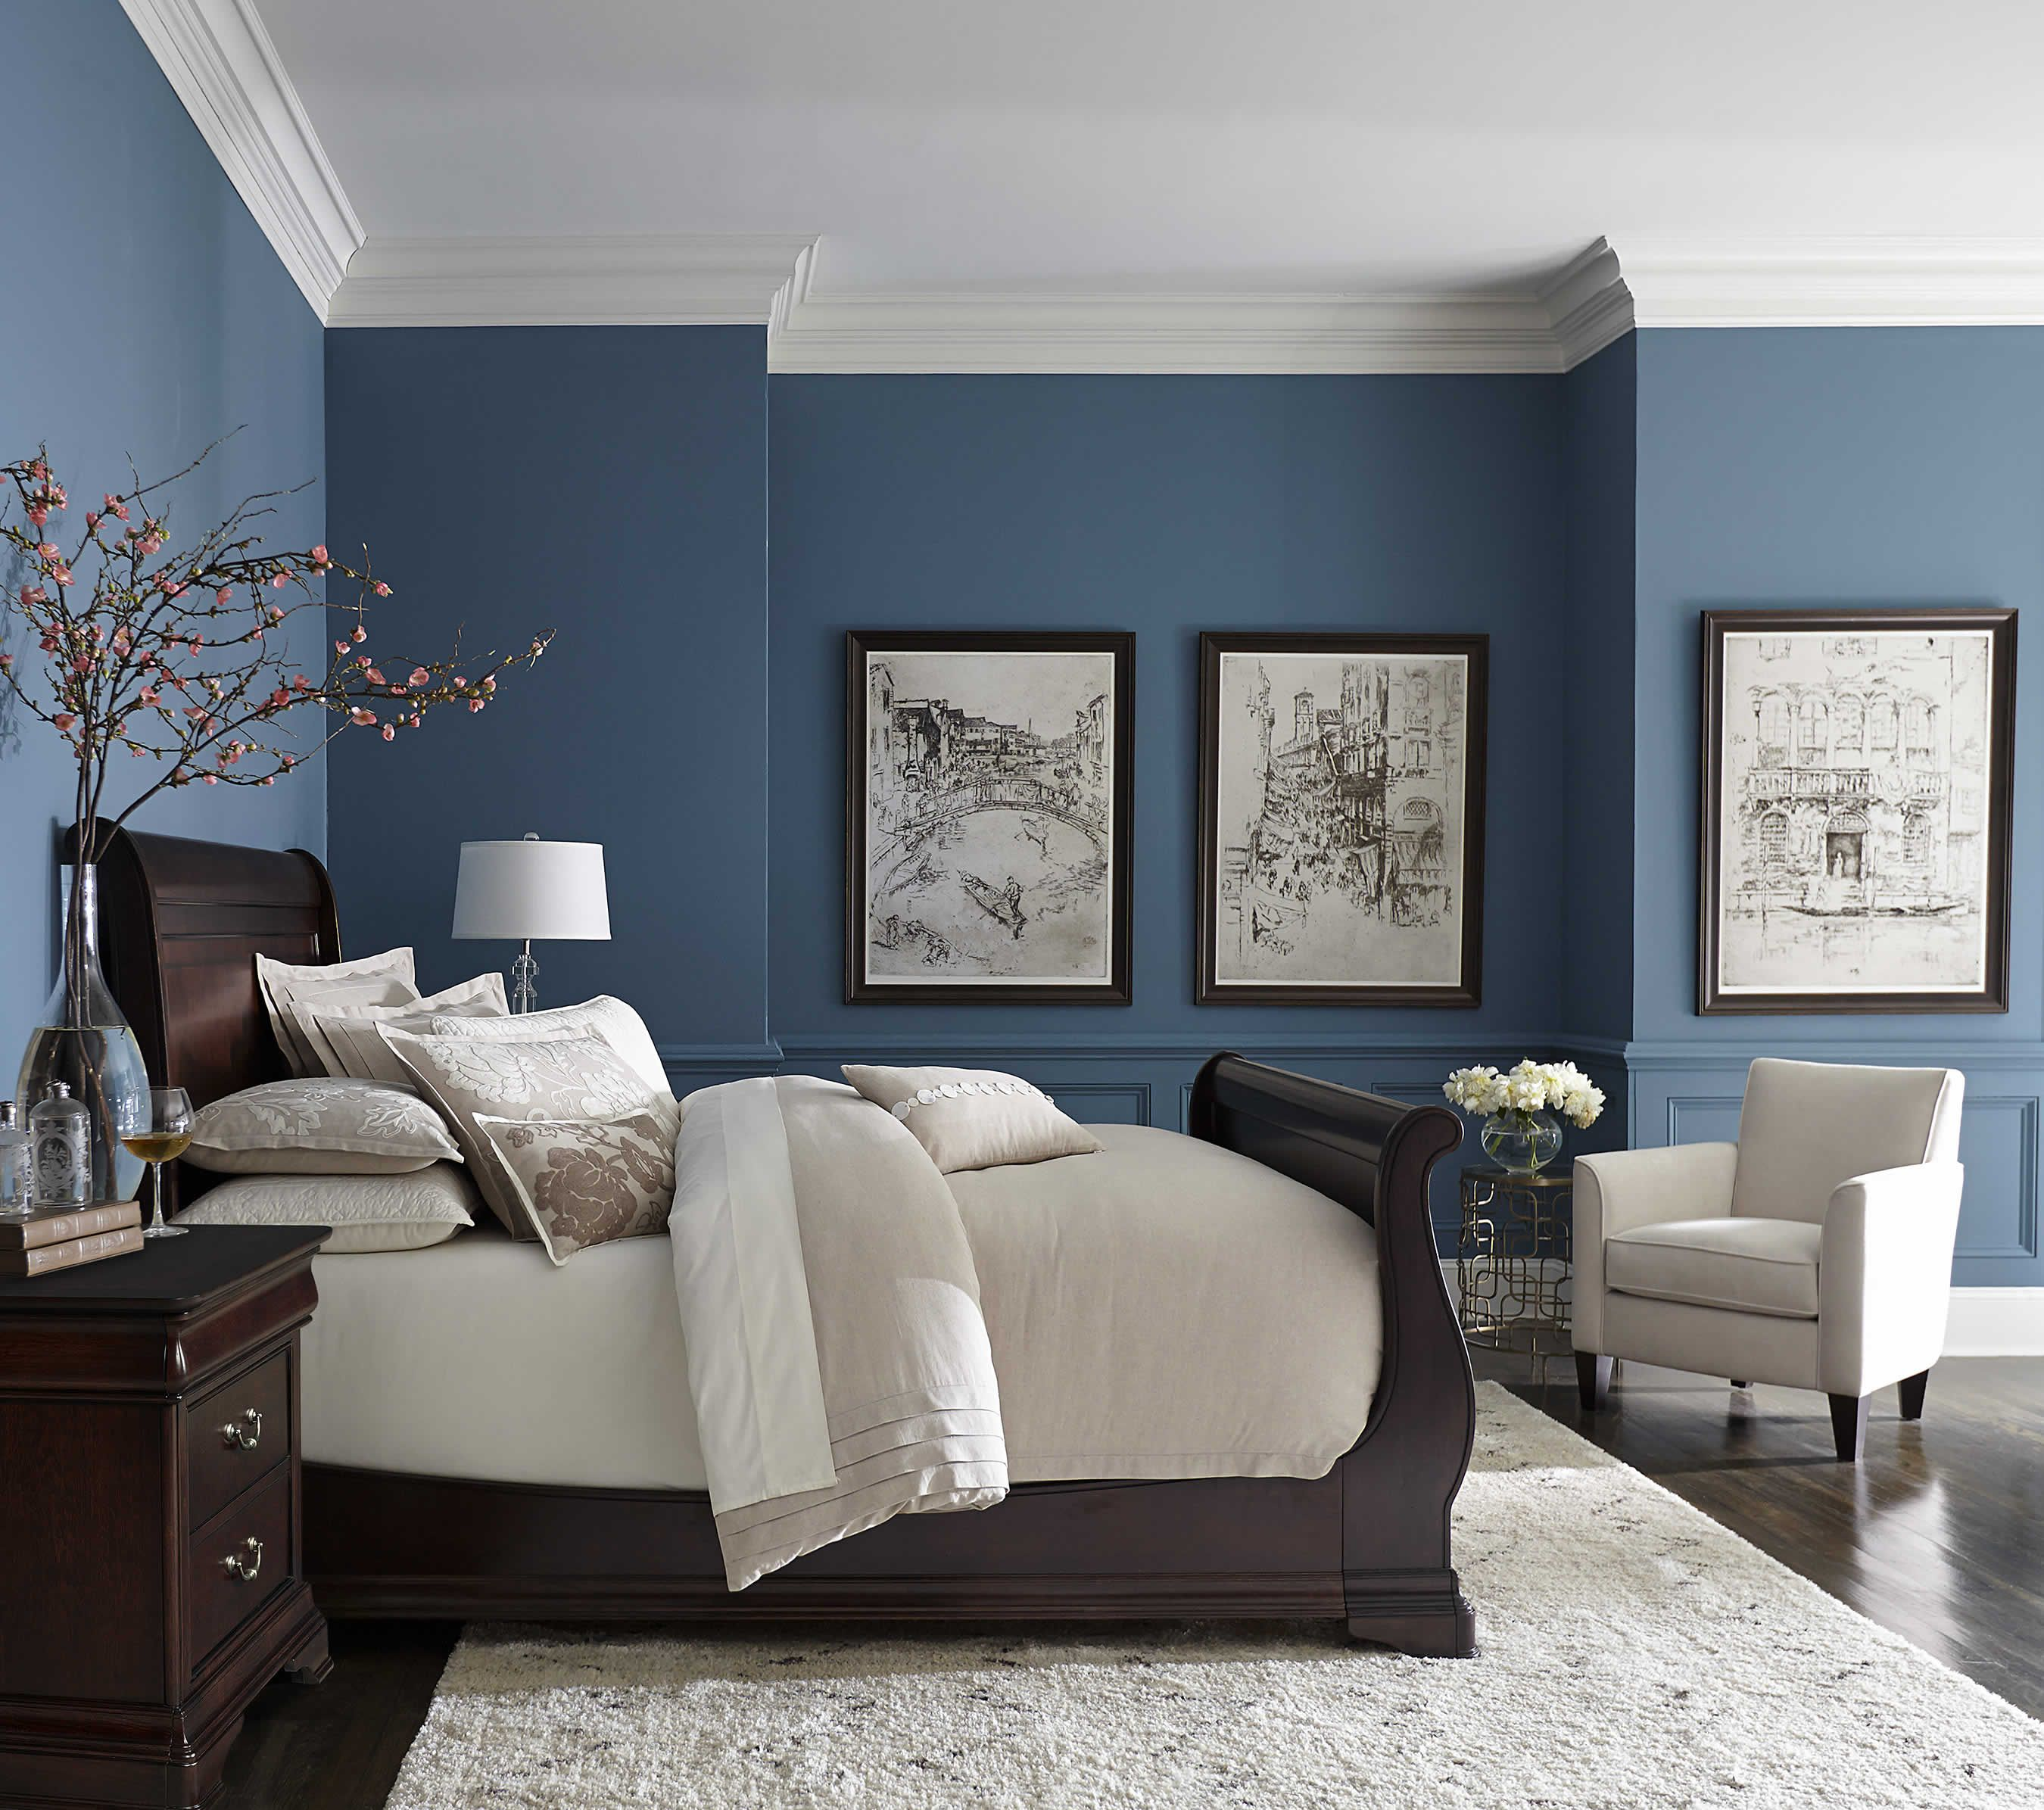 pretty blue color with white crown molding | Bedrooms ...